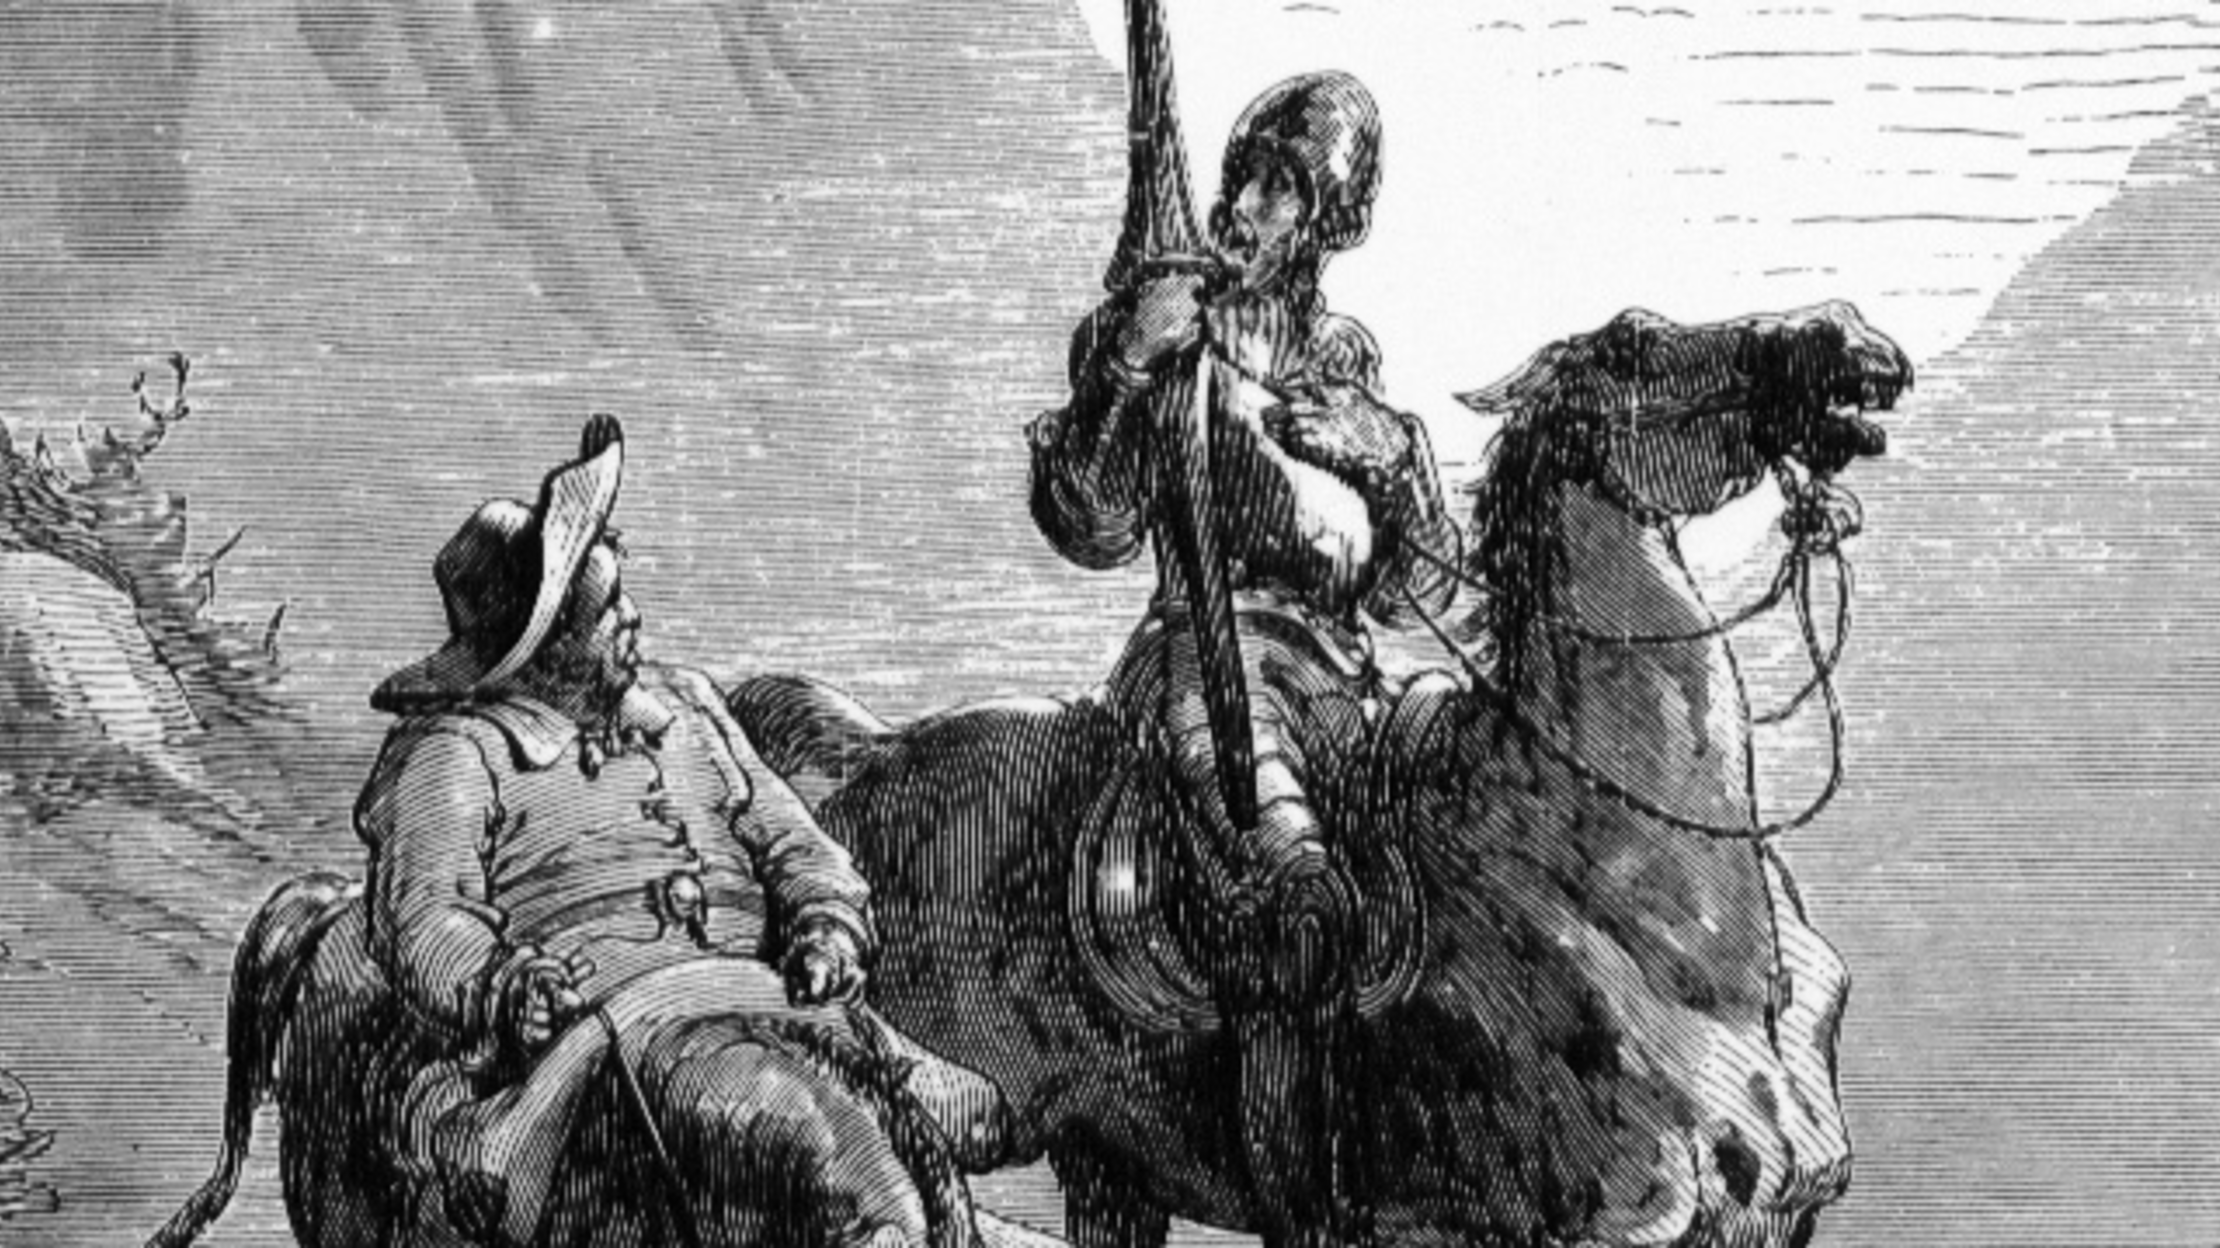 15 Things You Might Not Know About Don Quixote